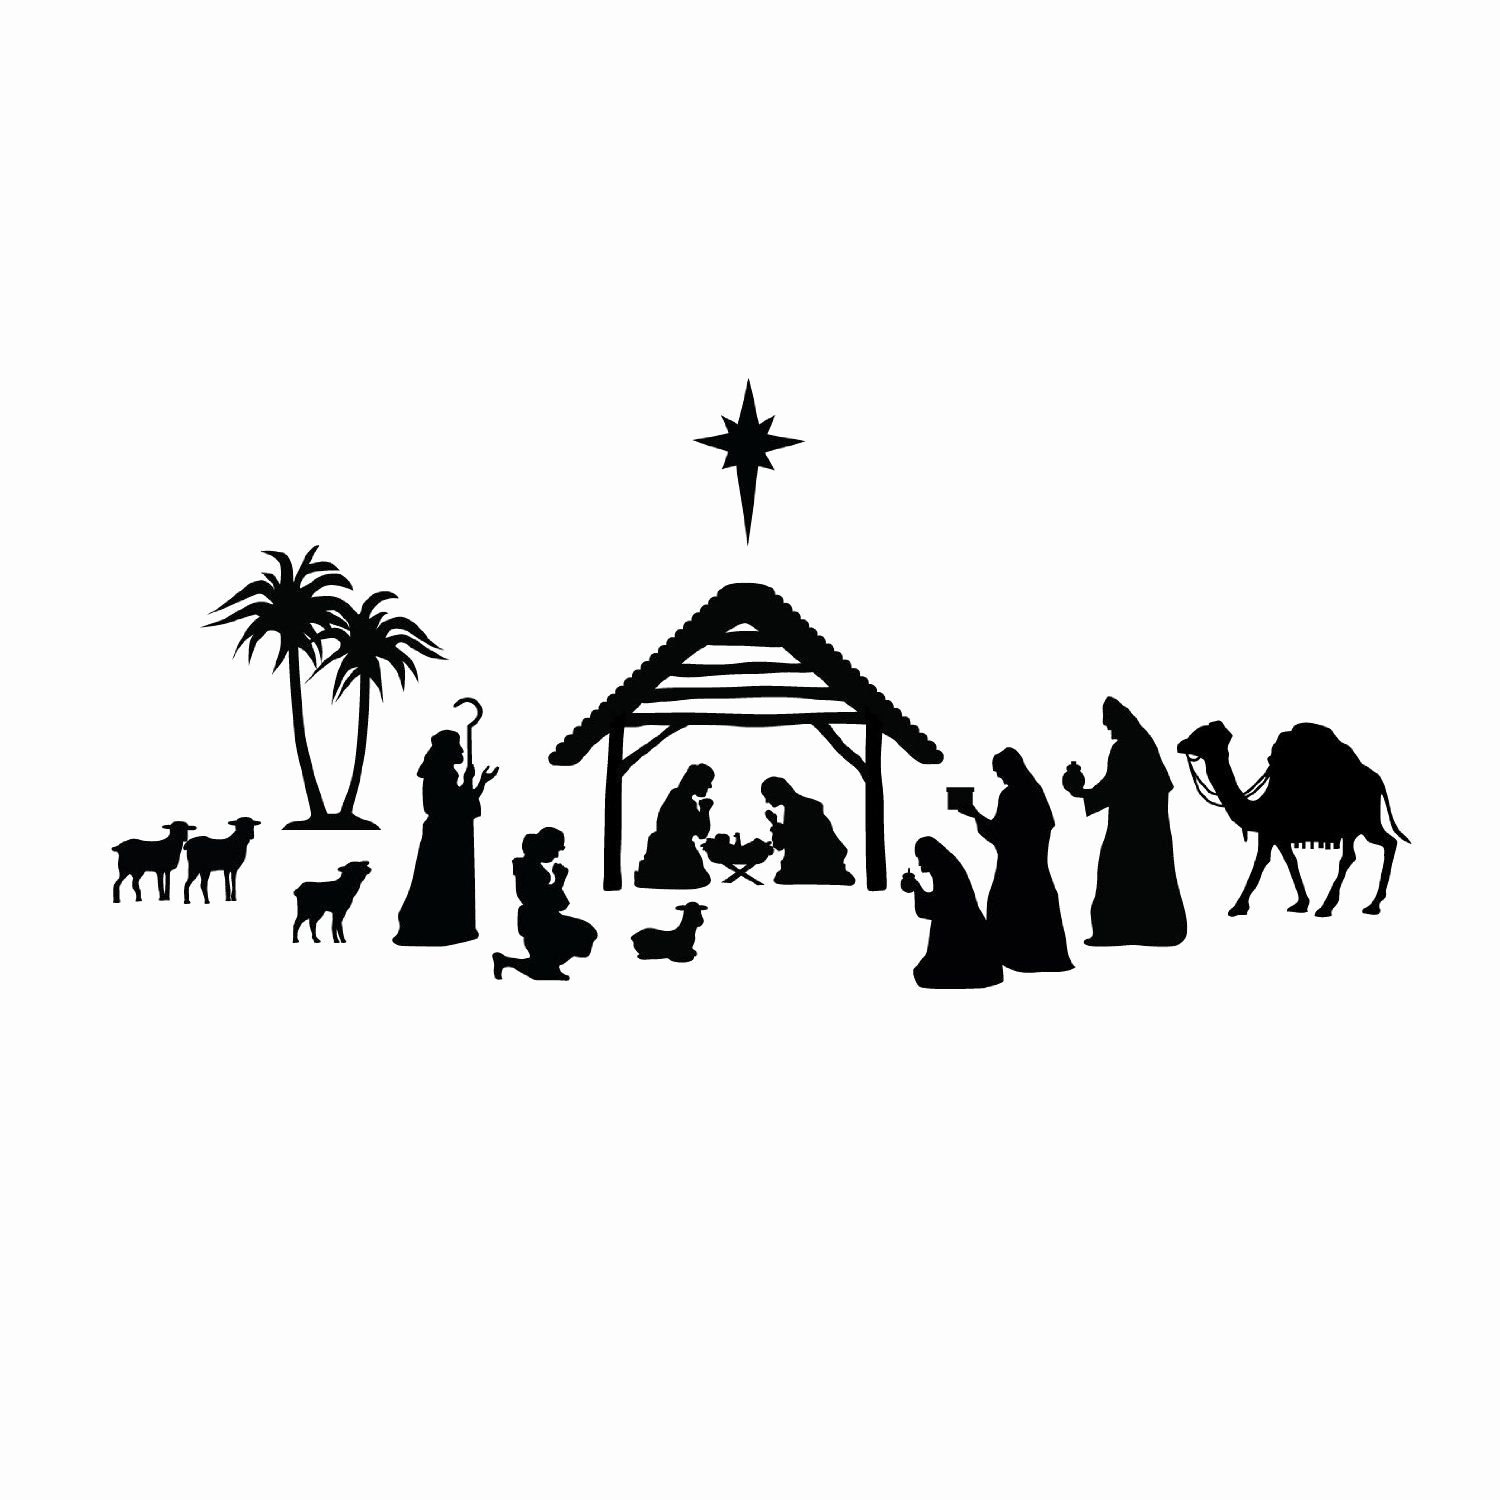 Nativity Silhouette Pattern Luxury Related Image Neat Diy Christmas Gifts